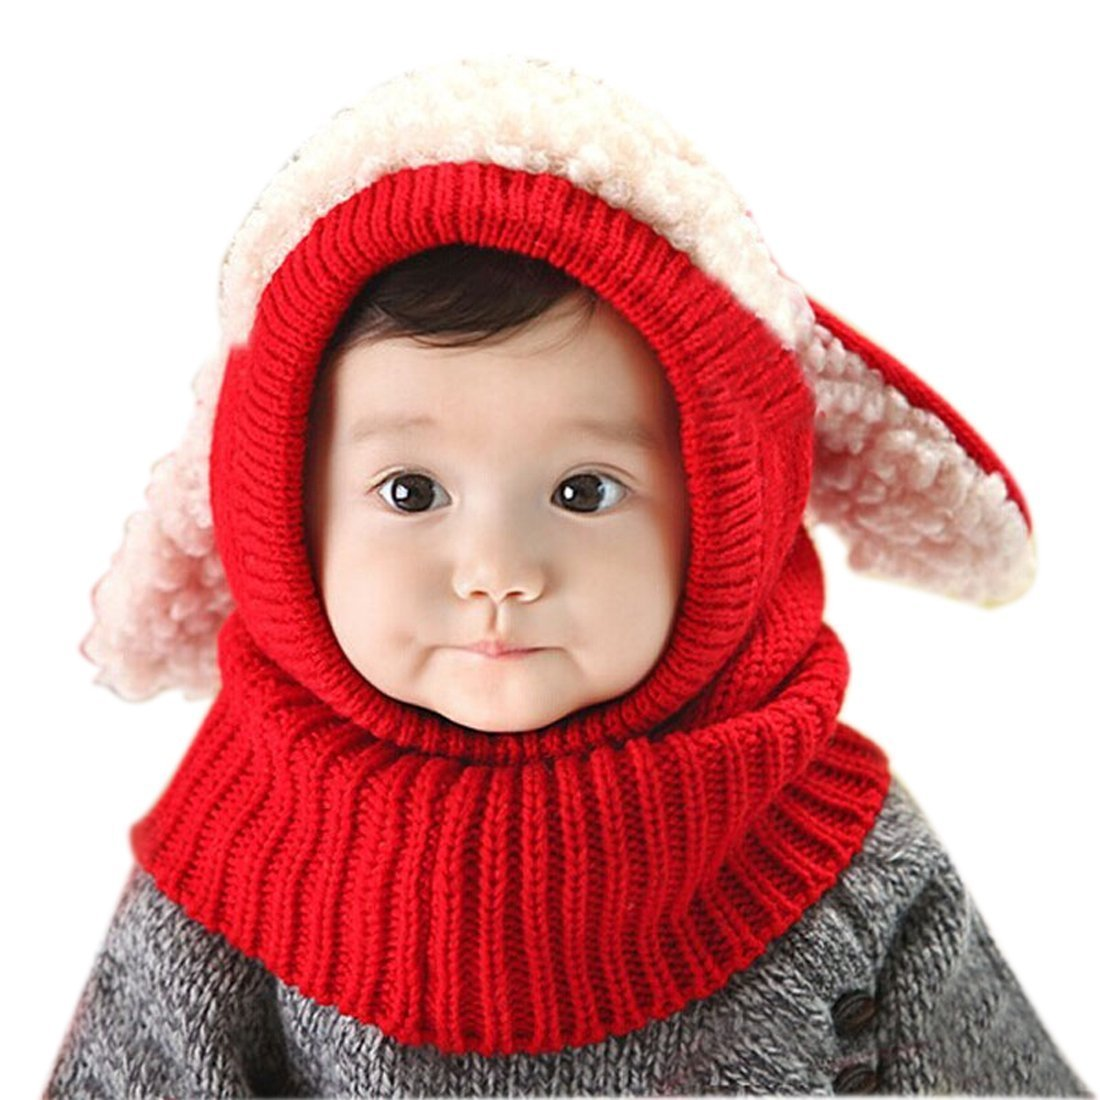 Crazy Genie Unisex-Baby Toddler Winter Beanie Warm Hat Hooded Scarf Earflap Knitted Cap Girls Boys